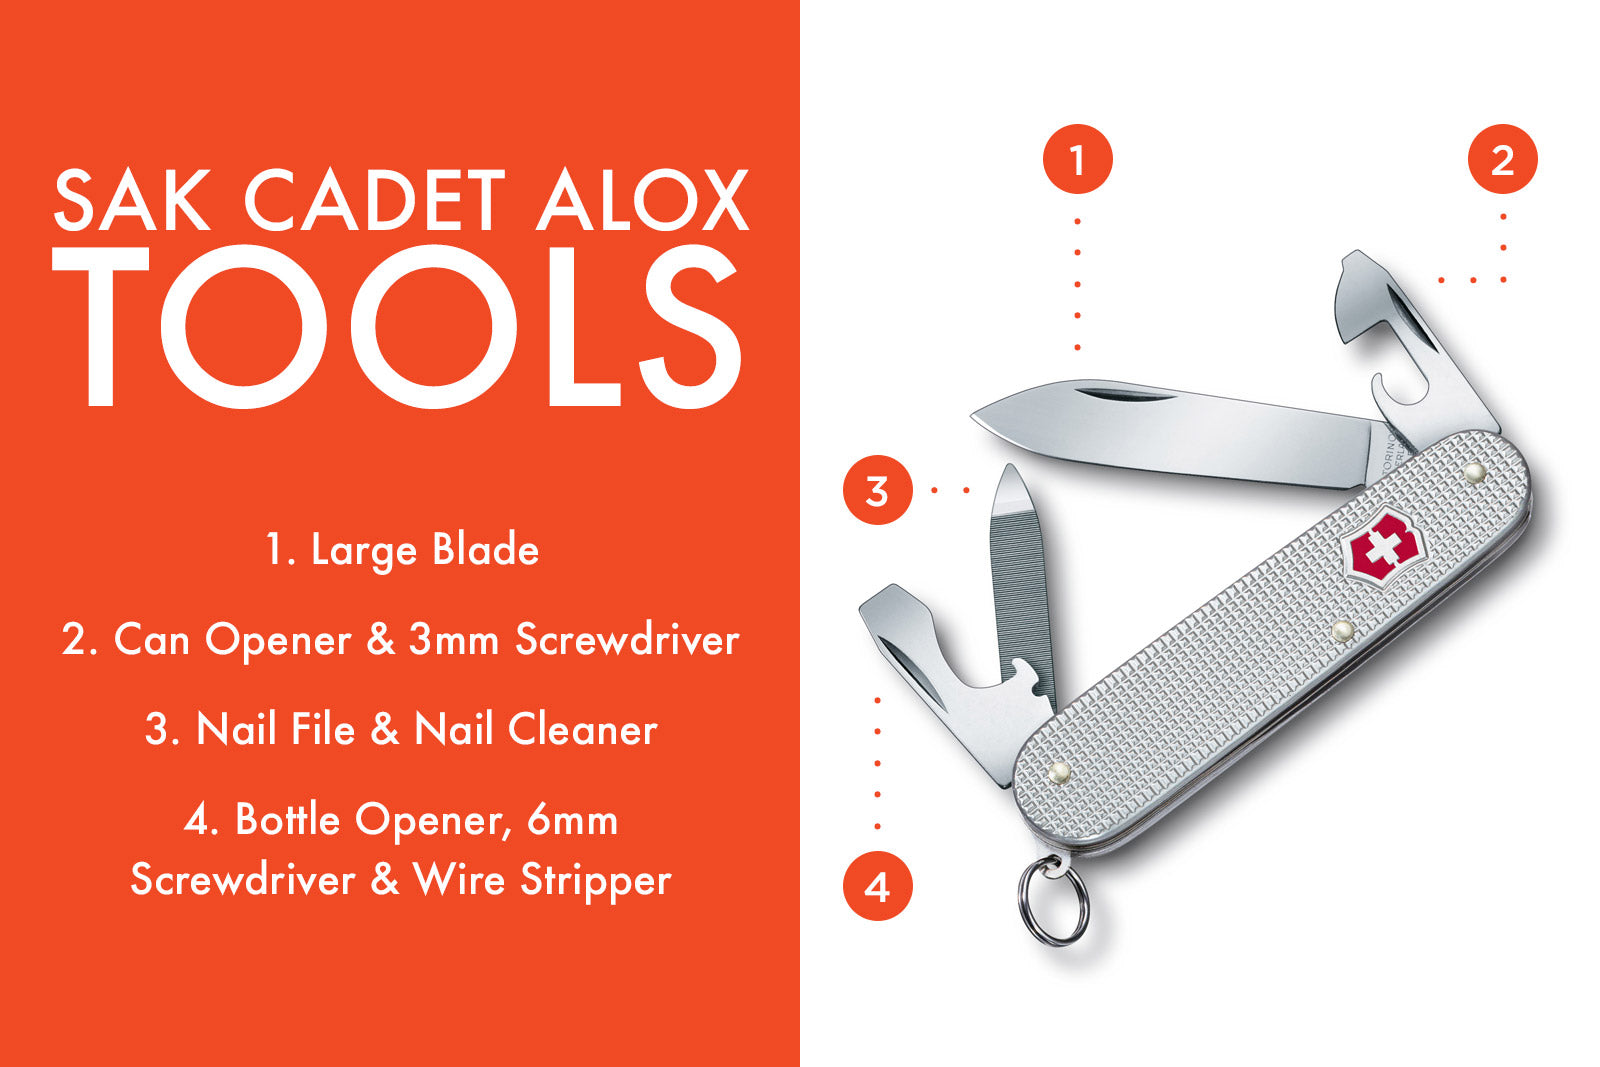 Swiss Army Knife Cadet Tools